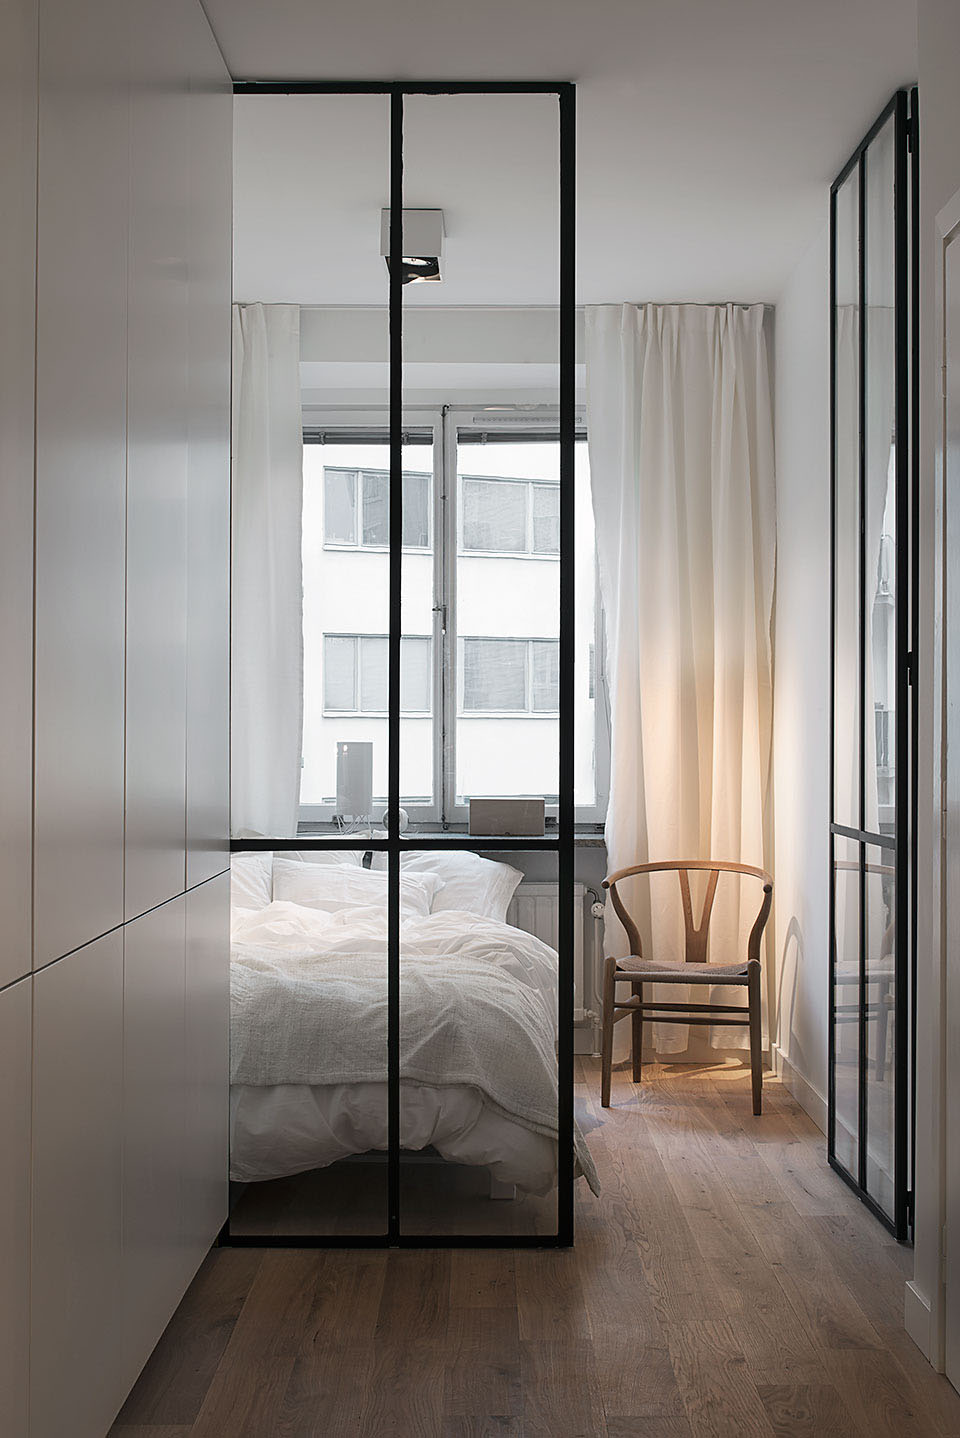 Bedroom with Glass Wall and Glass Door